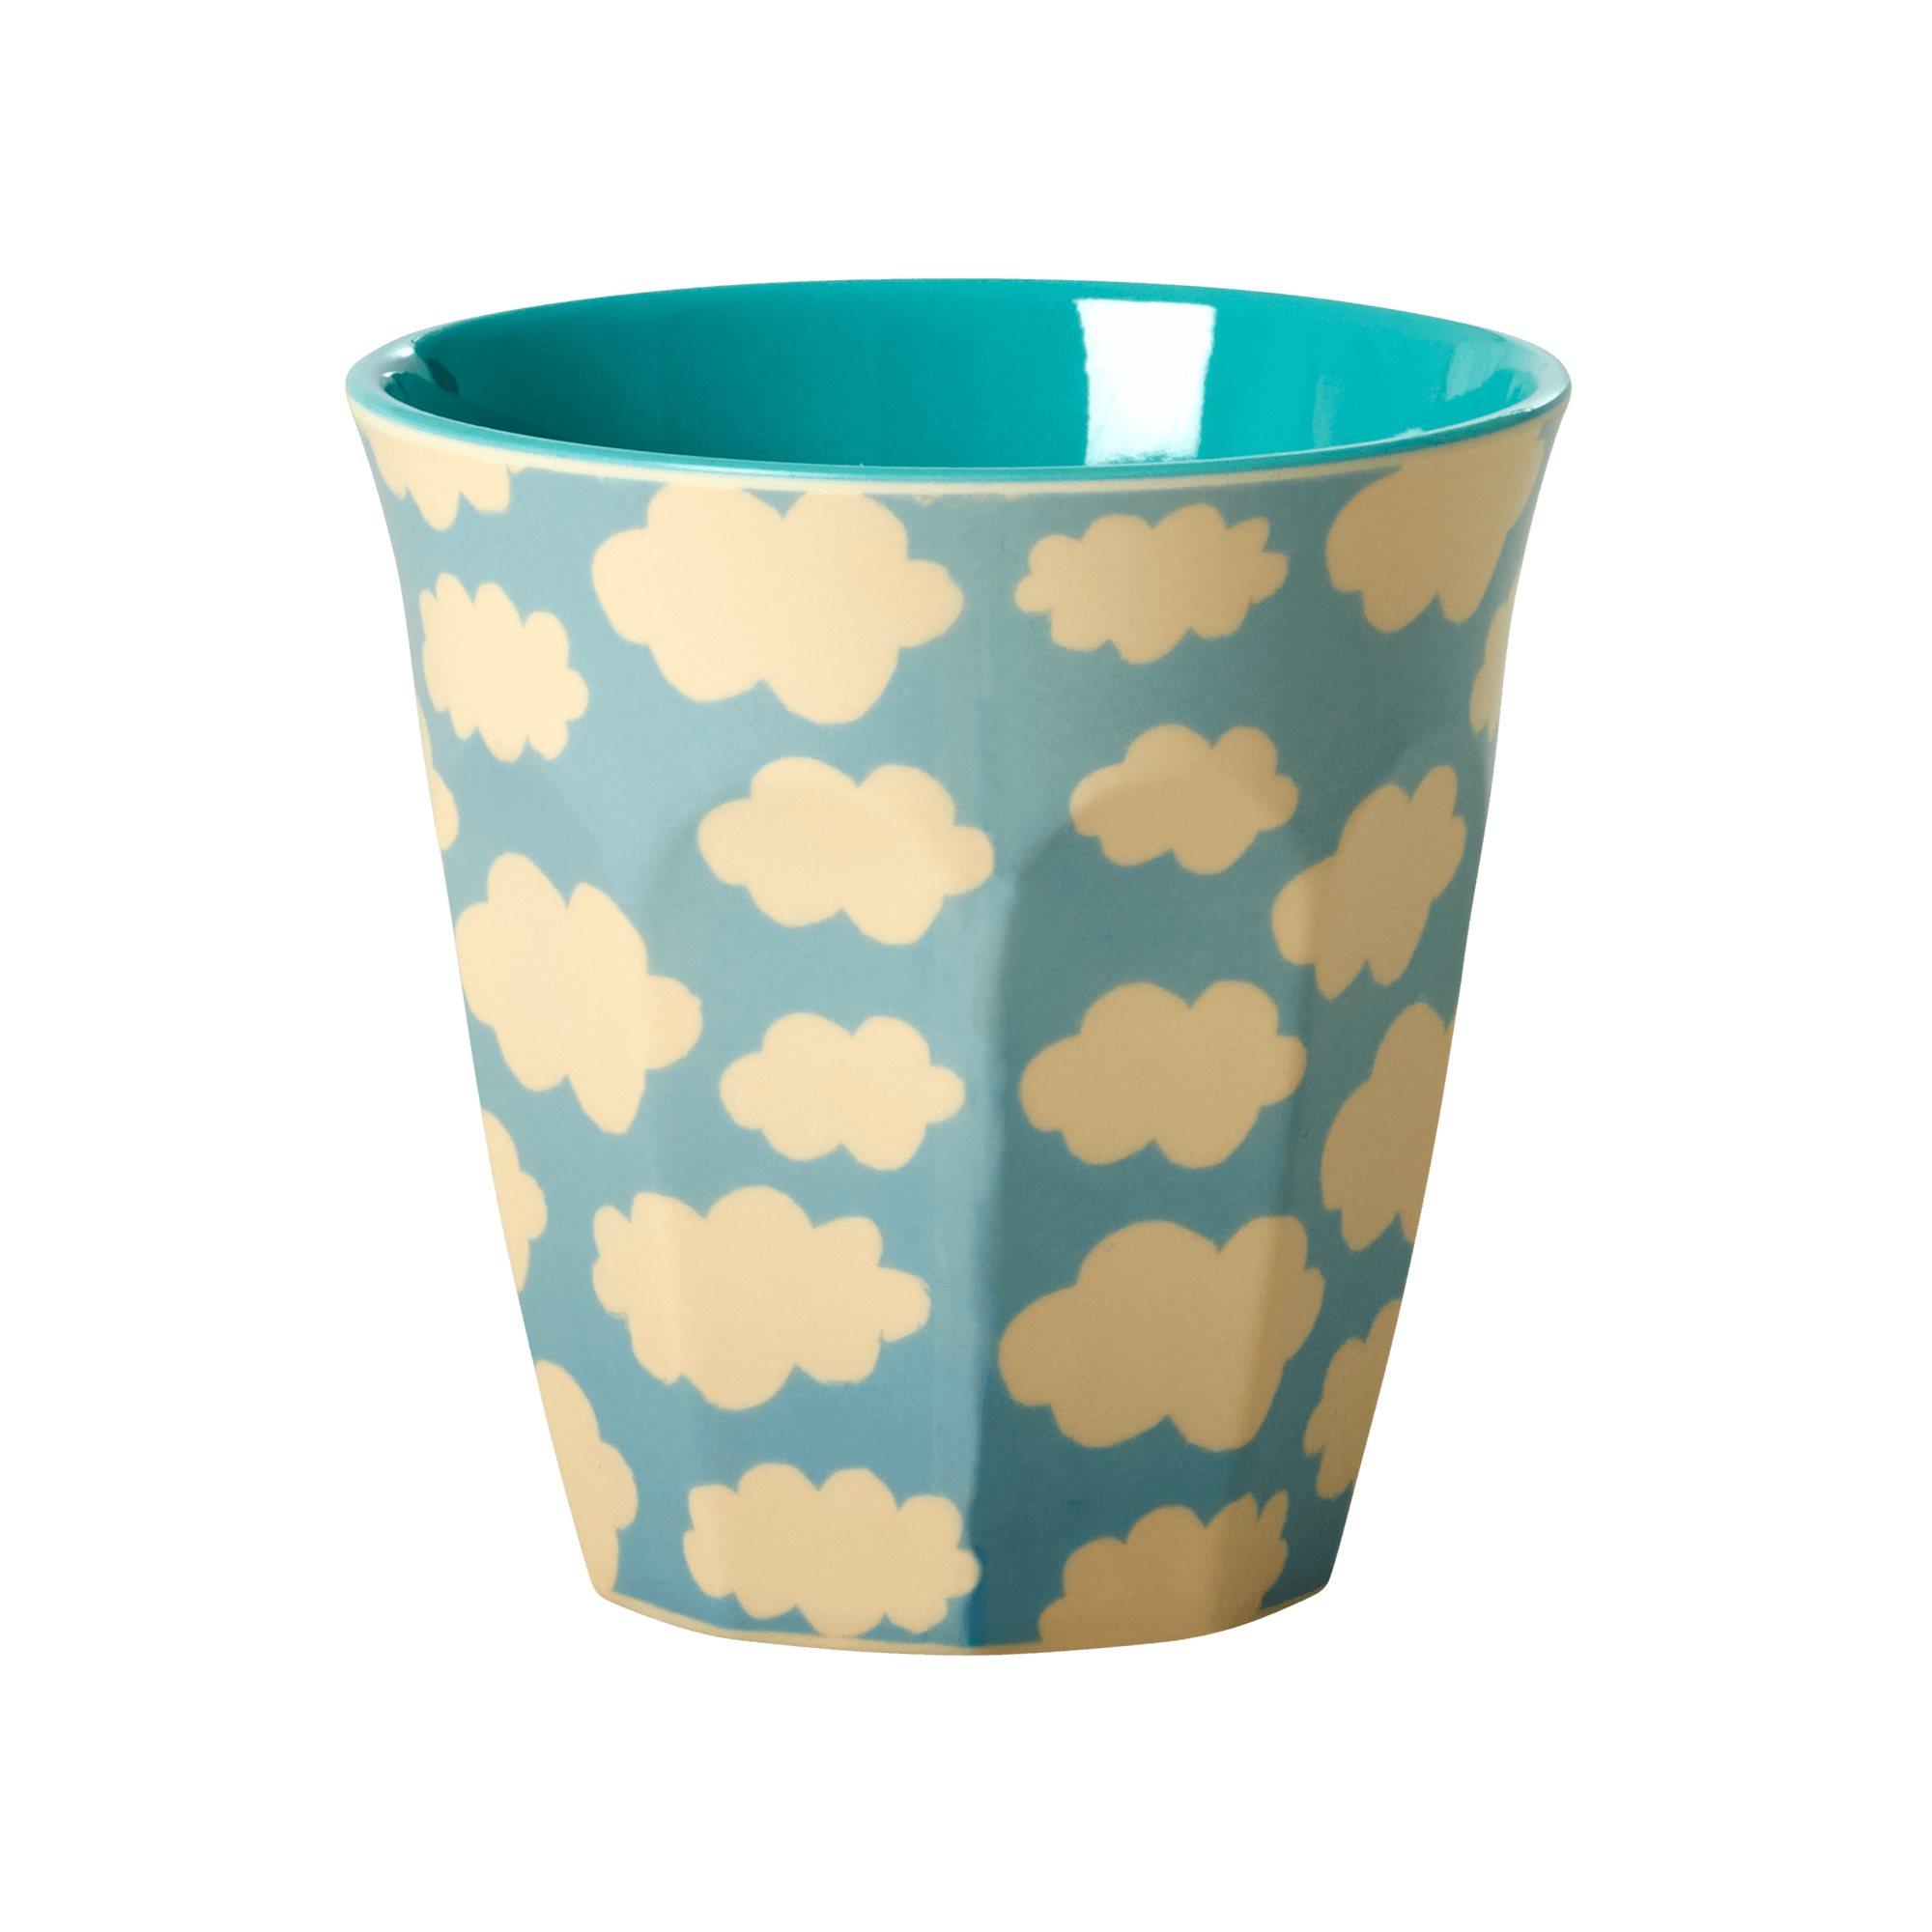 Medium Melamine Cup - Cloud Print - rice